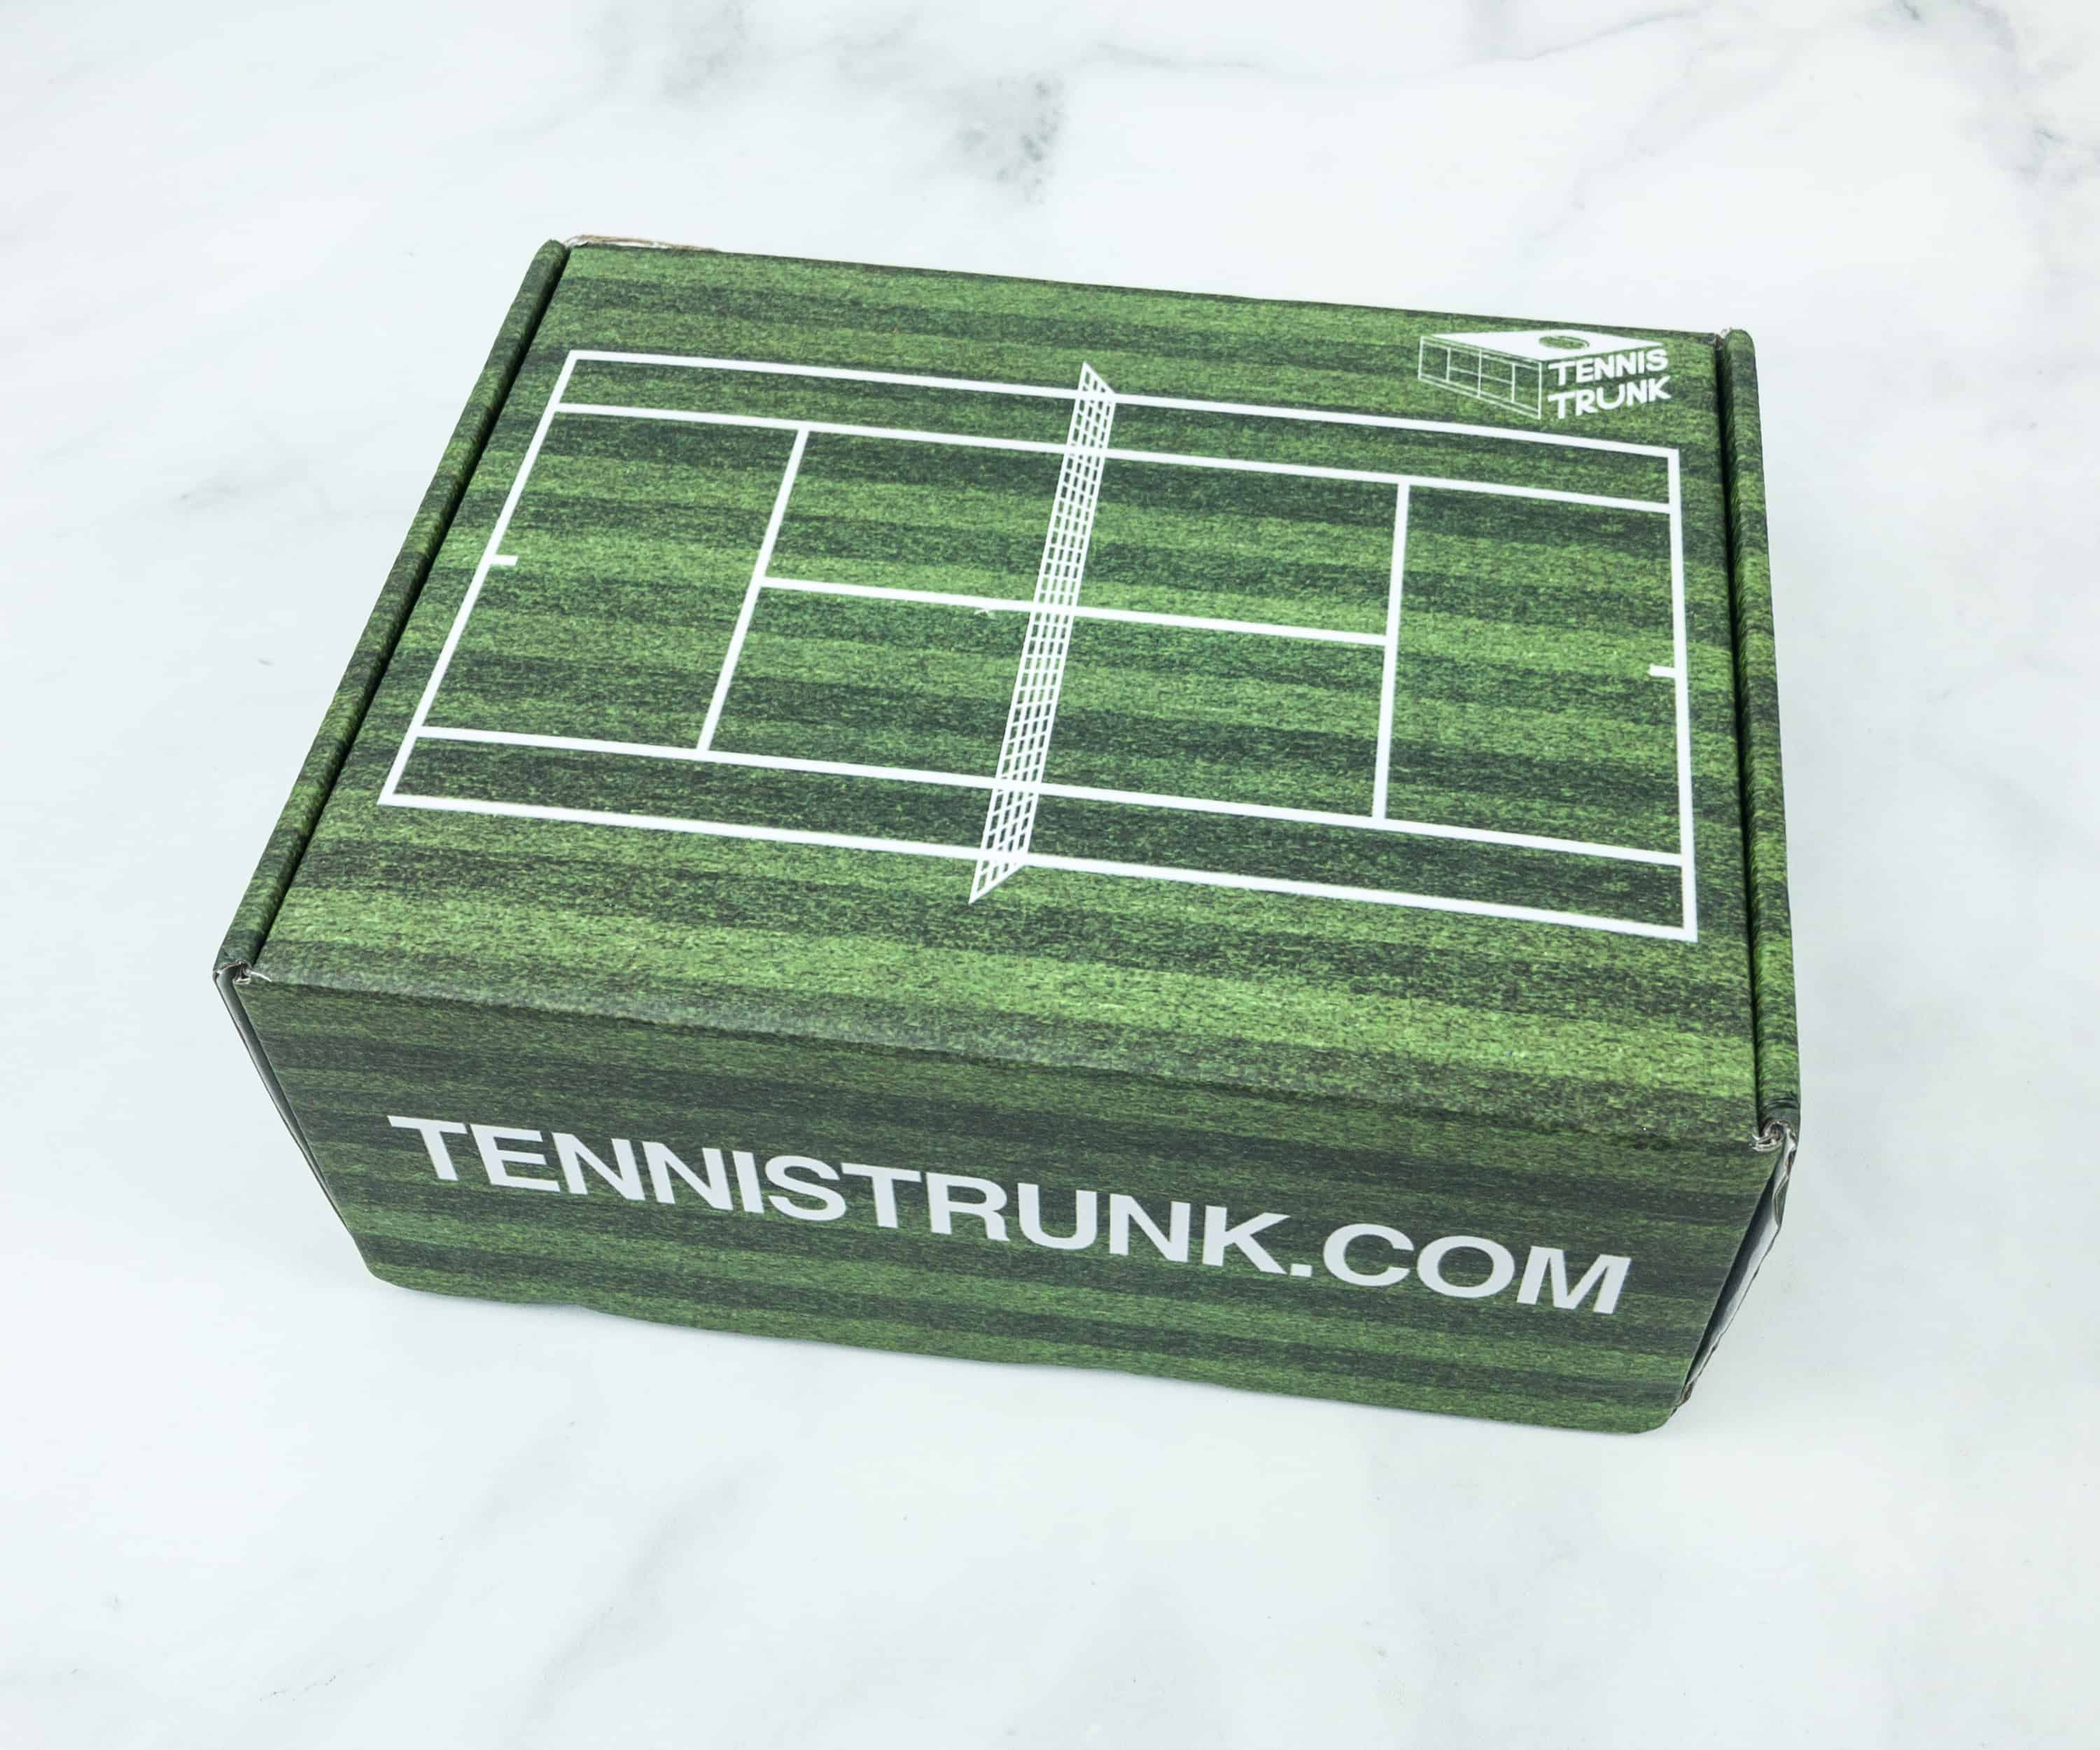 new styles 368bb b91d6 Tennis Trunk is a monthly subscription box that sends tennis balls and  other essentials for the tennis enthusiast. Developed by tennis players for  tennis ...